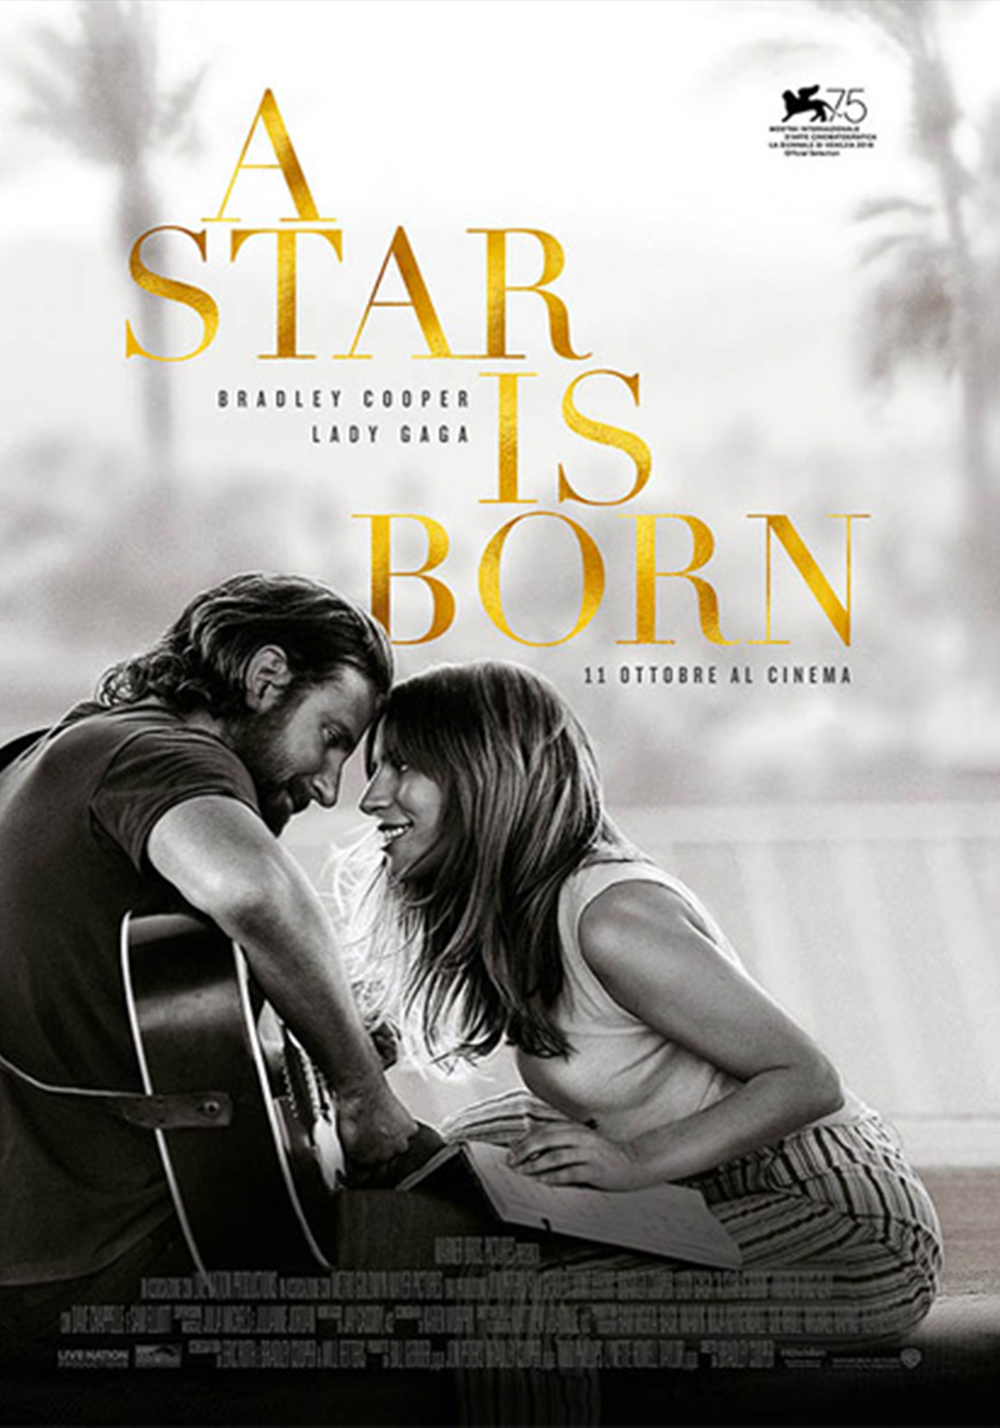 A Star is Born Cinema Pantelleria Cineteatro Scauri